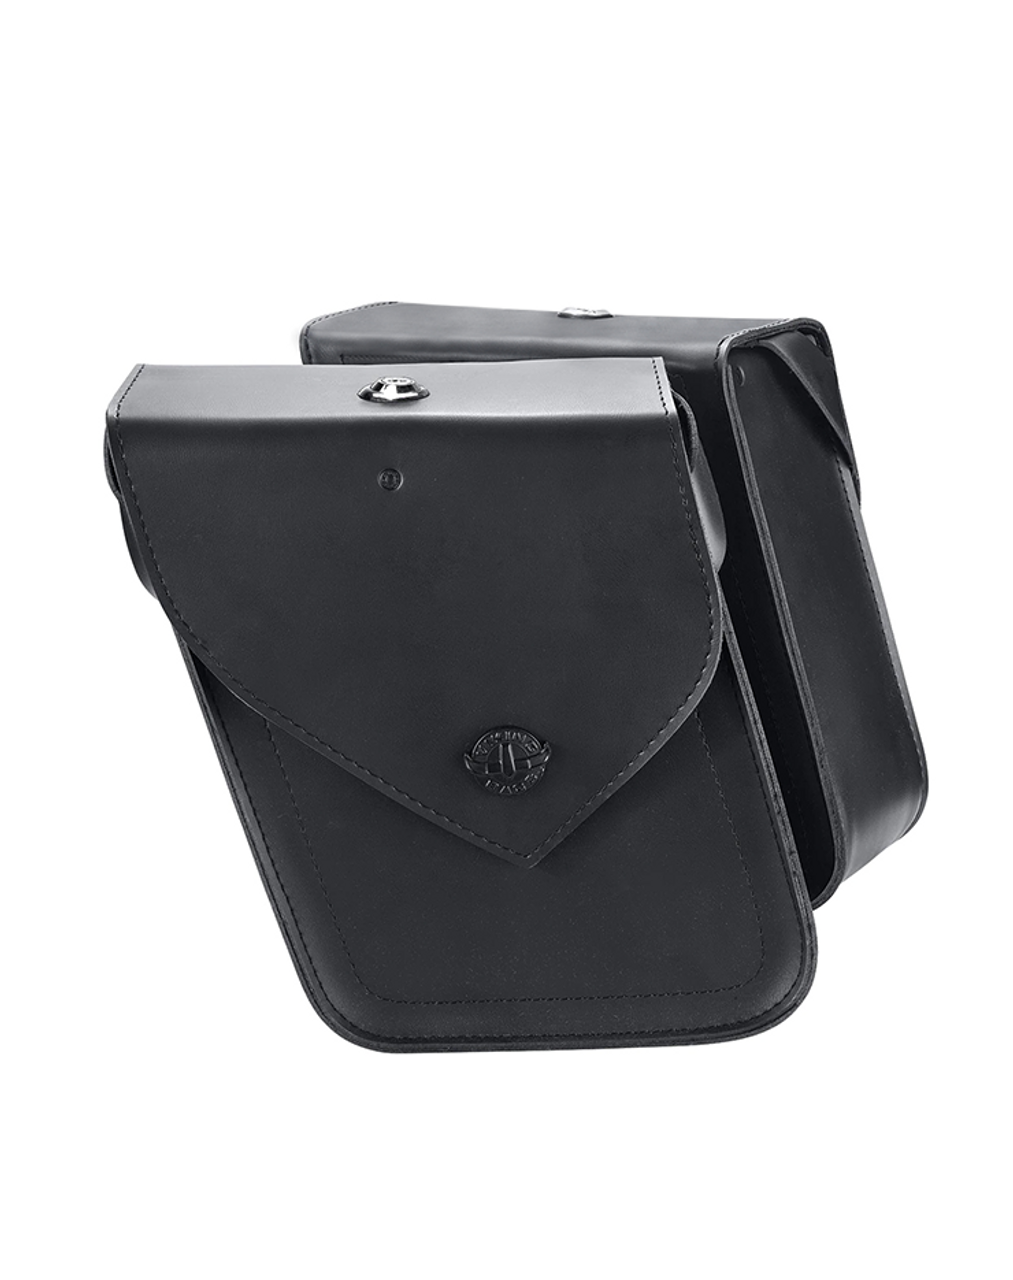 Viking Dark Age Compact Plain Leather Motorcycle Saddlebags For Sportster Iron 1200 Both Bags View